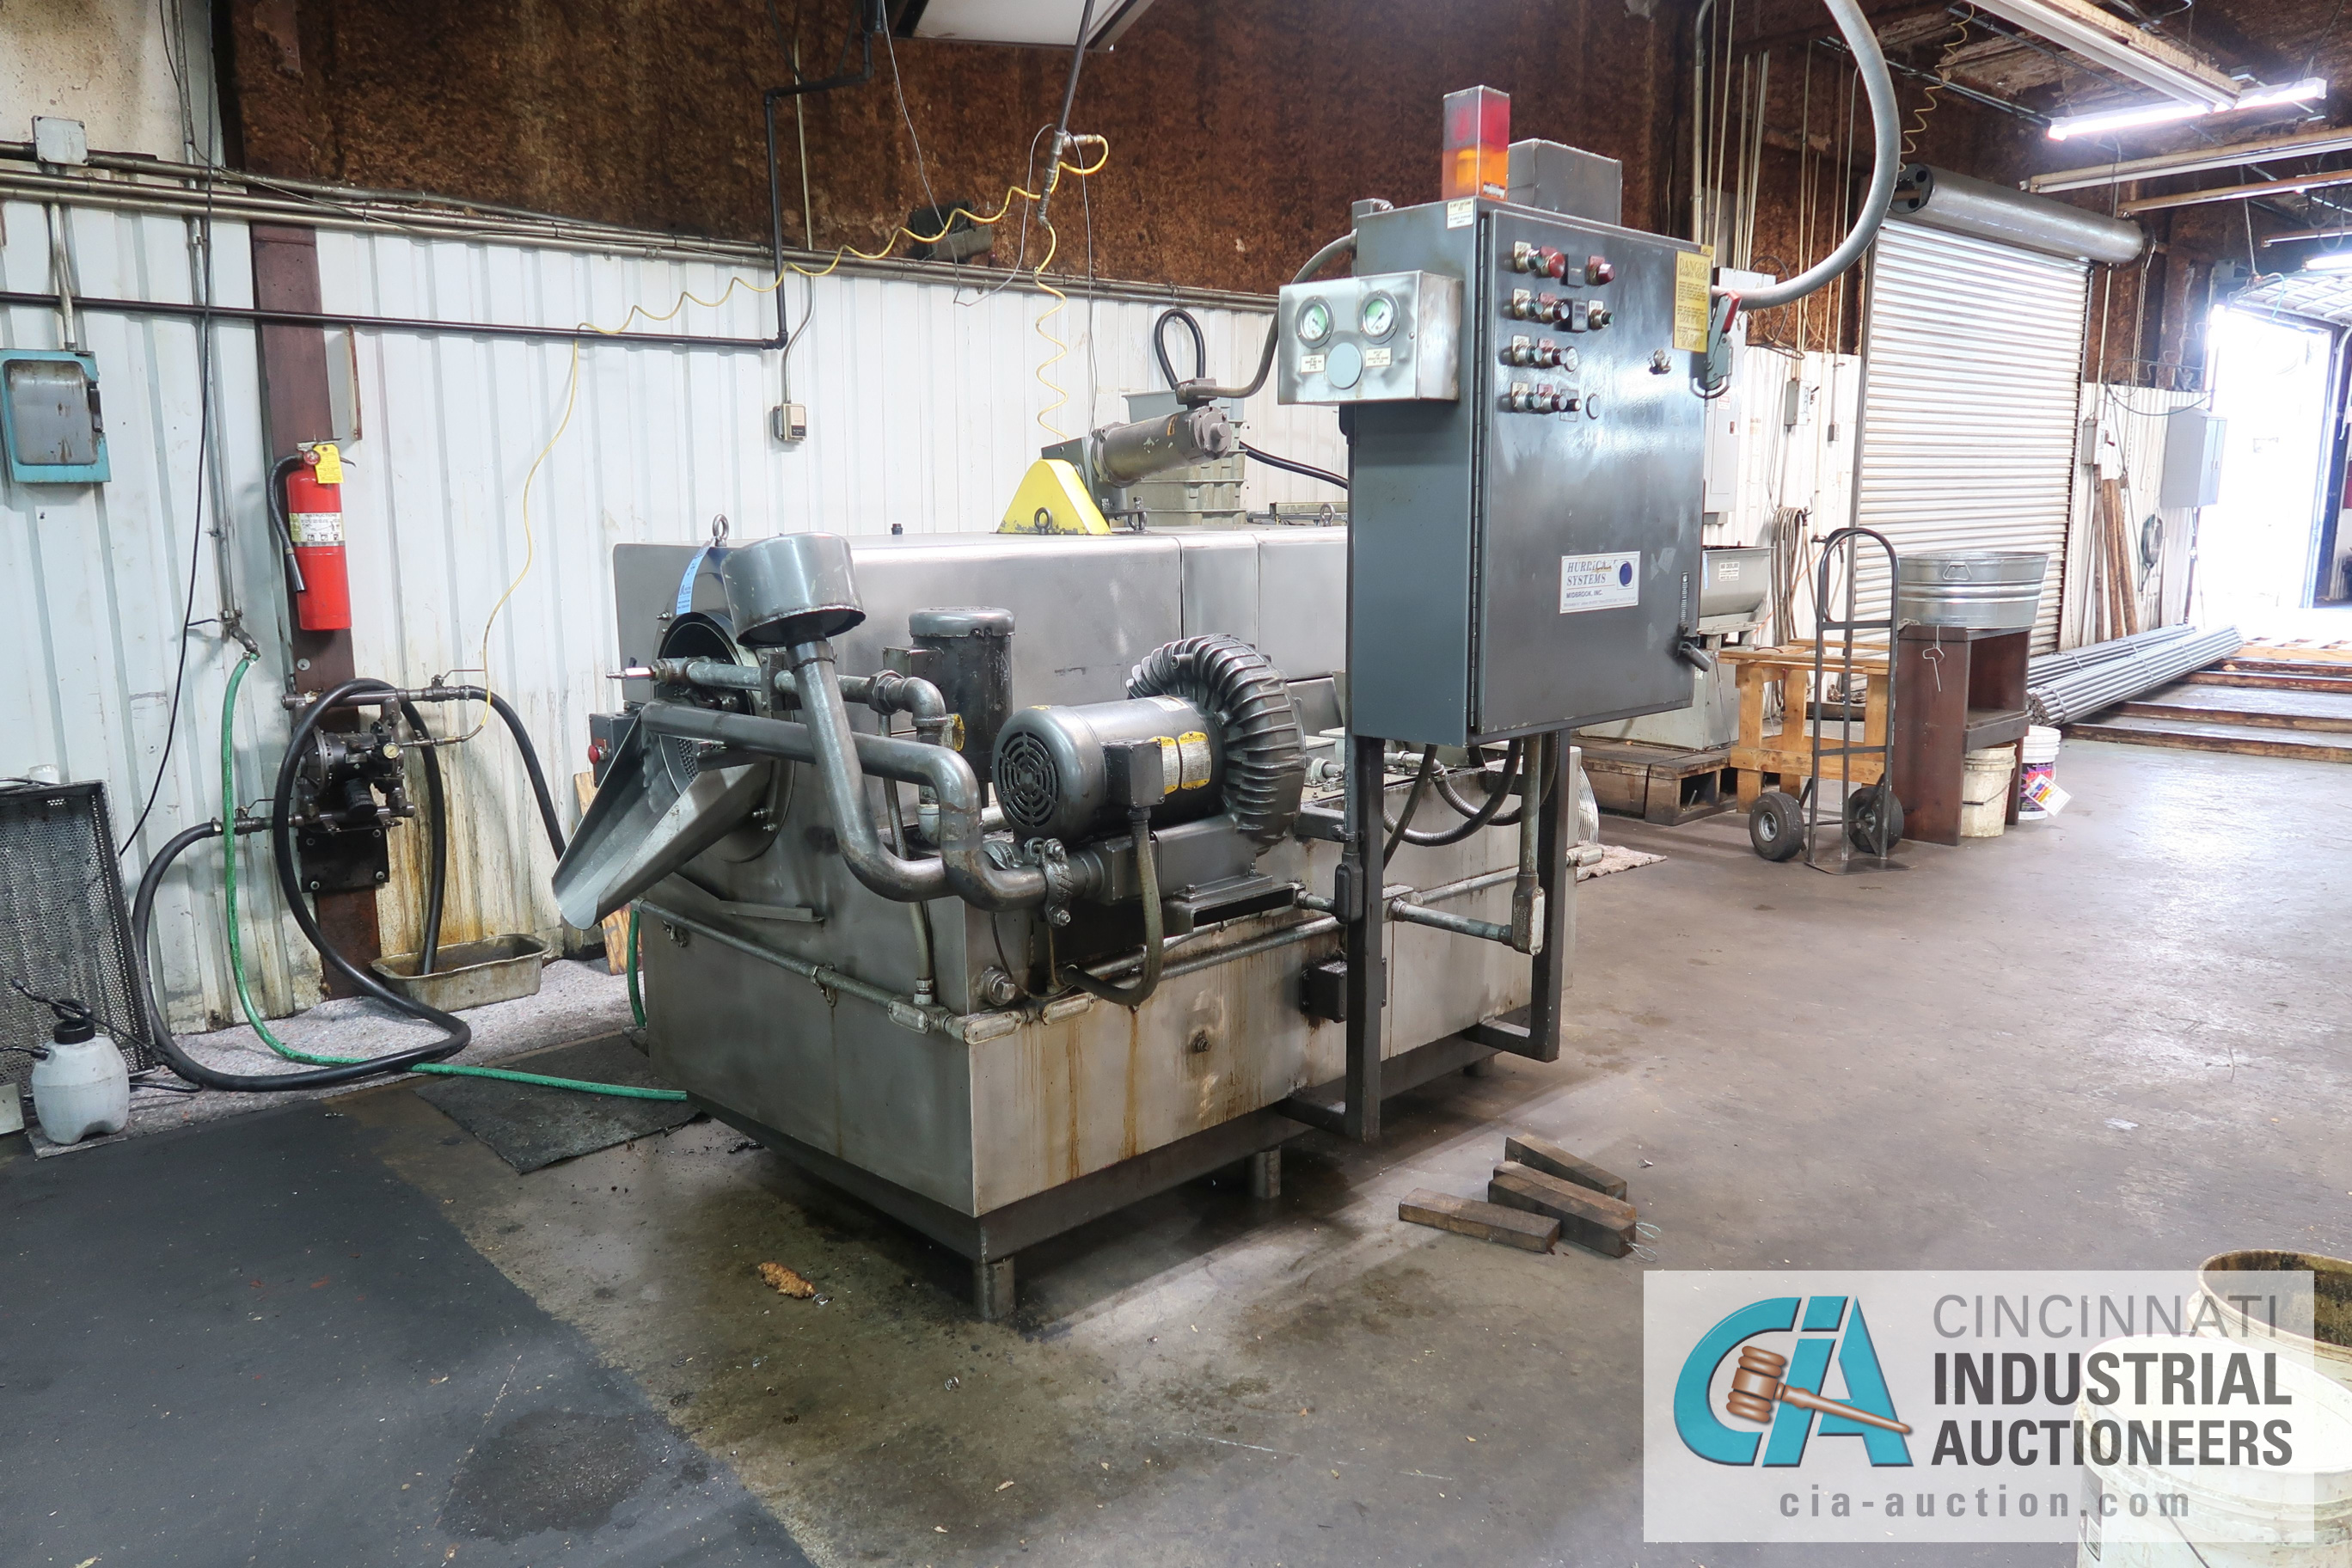 Lot 34 - HURRICANE MODEL 50RD PARTS WASHER; S/N 43709-002 (NEW 1997), 8,736 HOURS SHOWING, 3-PHASE